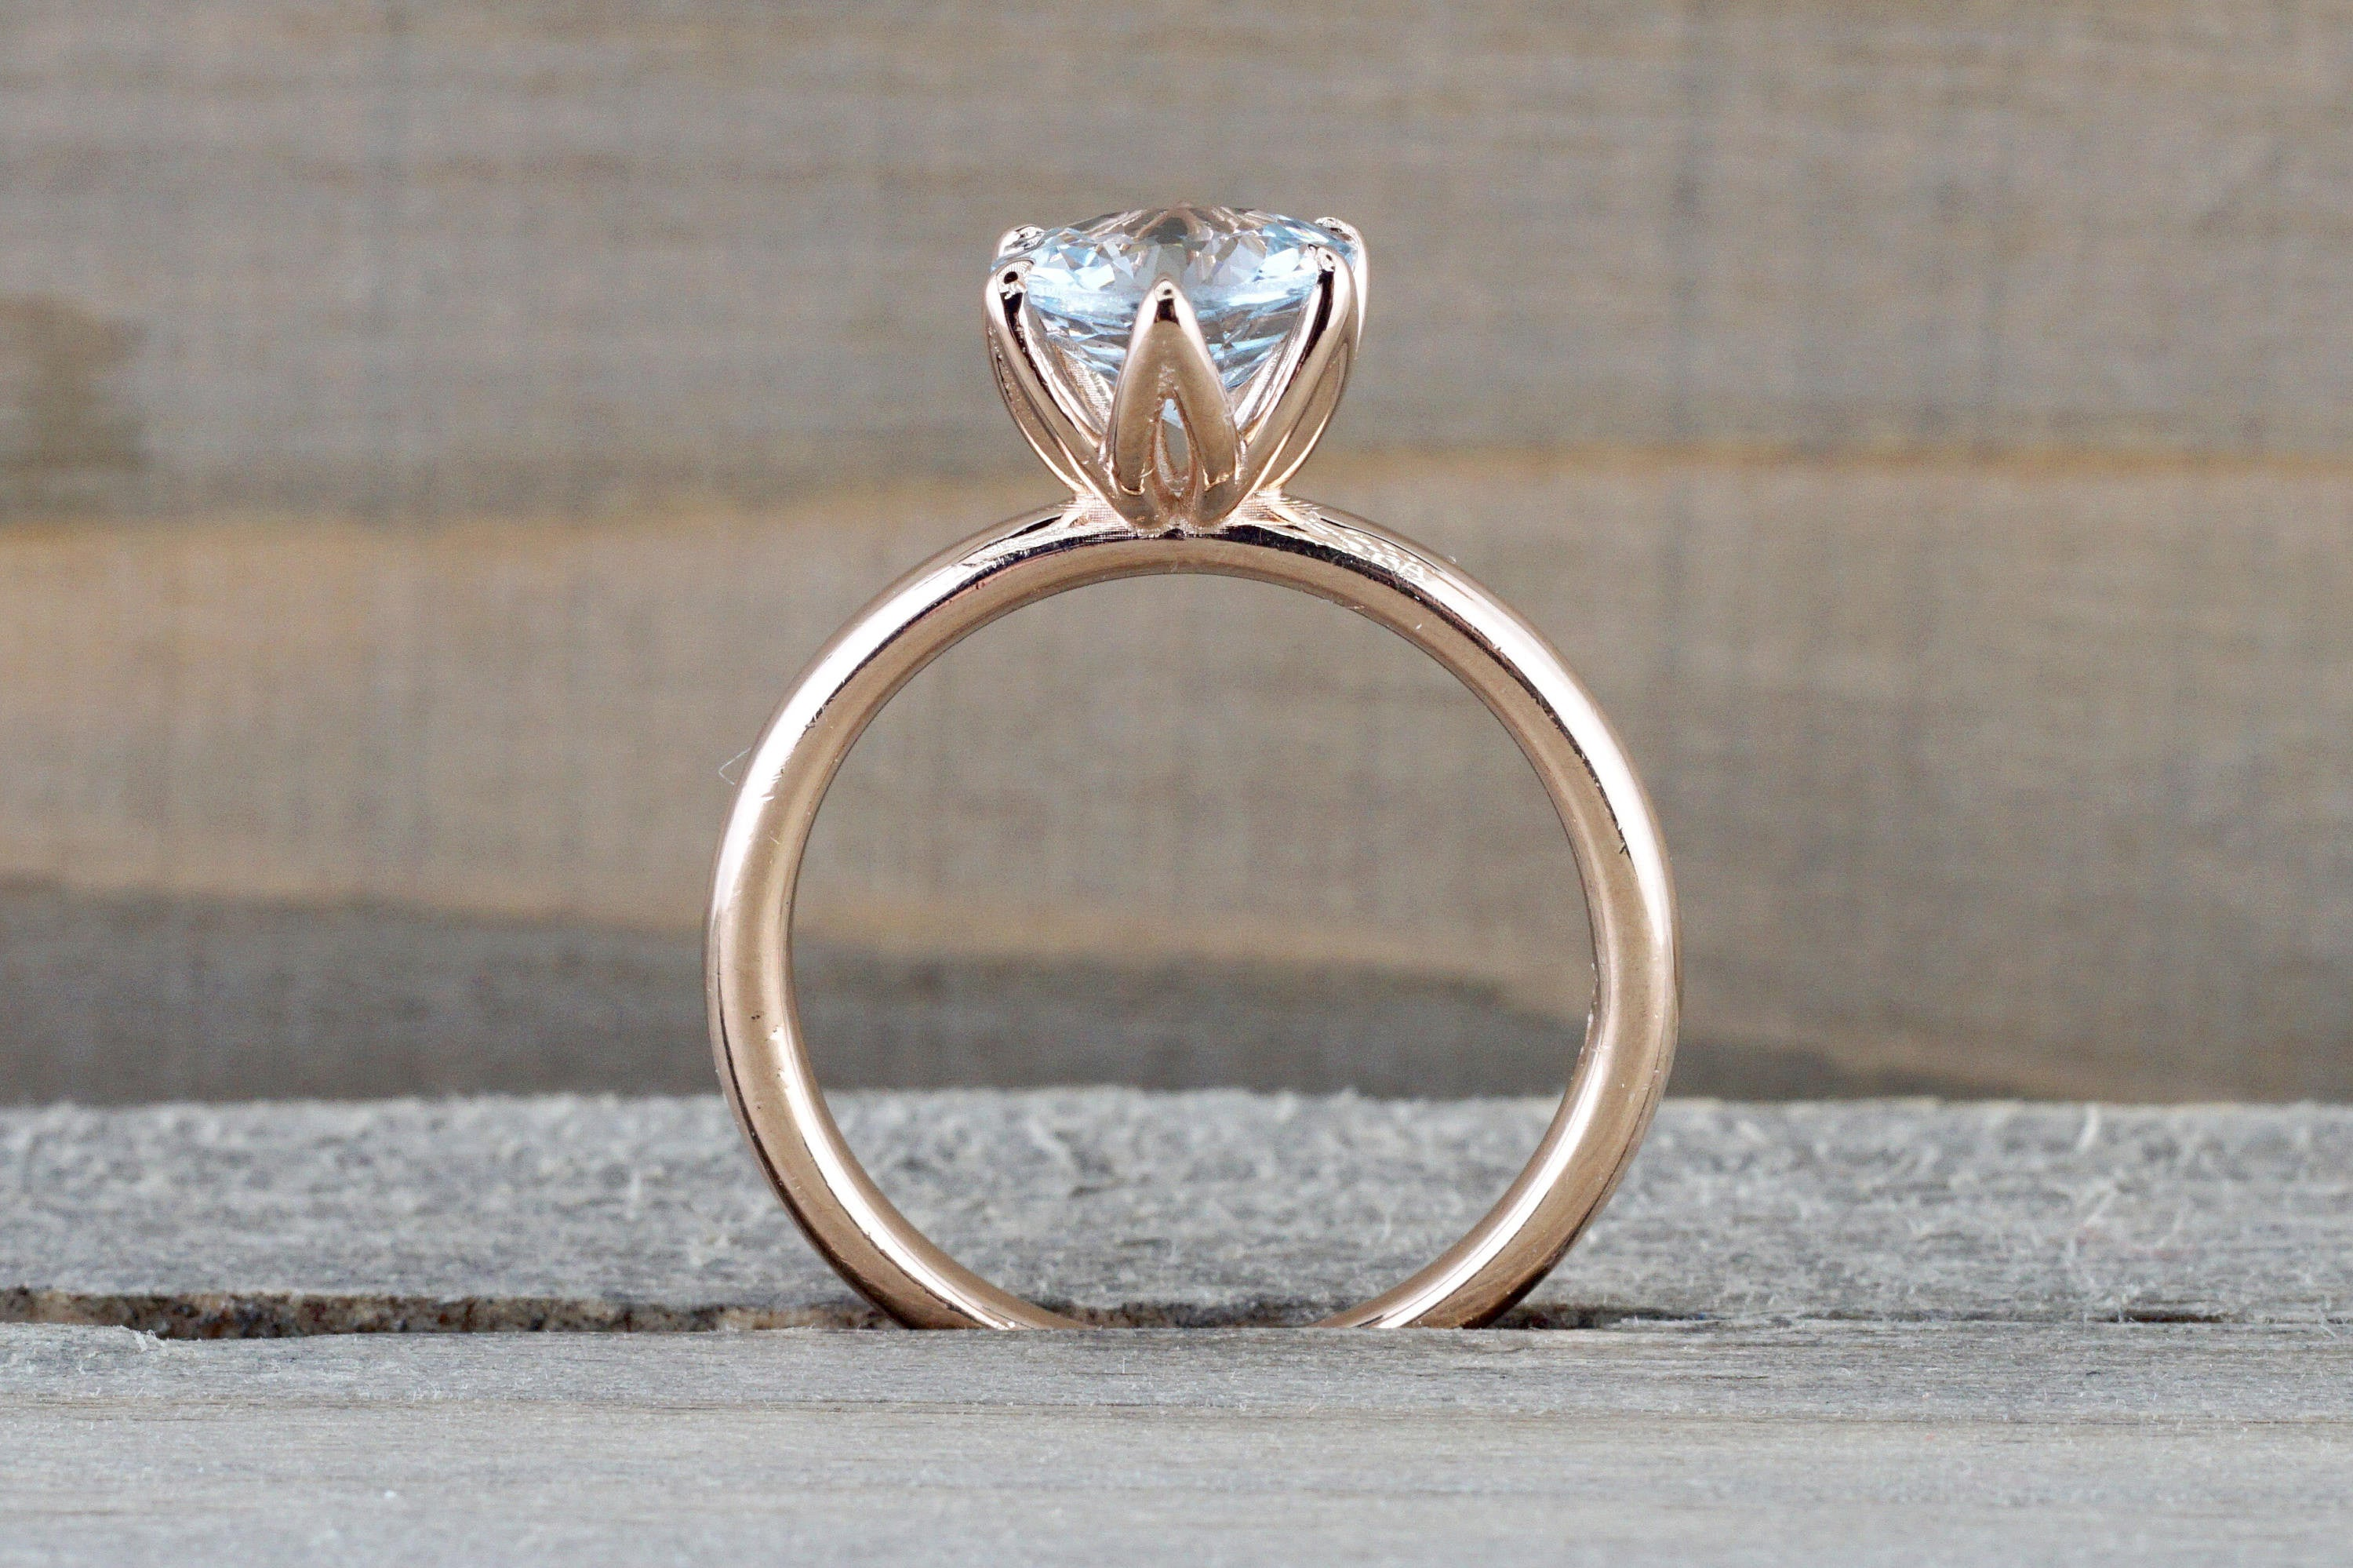 engagement semi white shop cathedral gold rings solitaire rakuten setting prong product ring mount